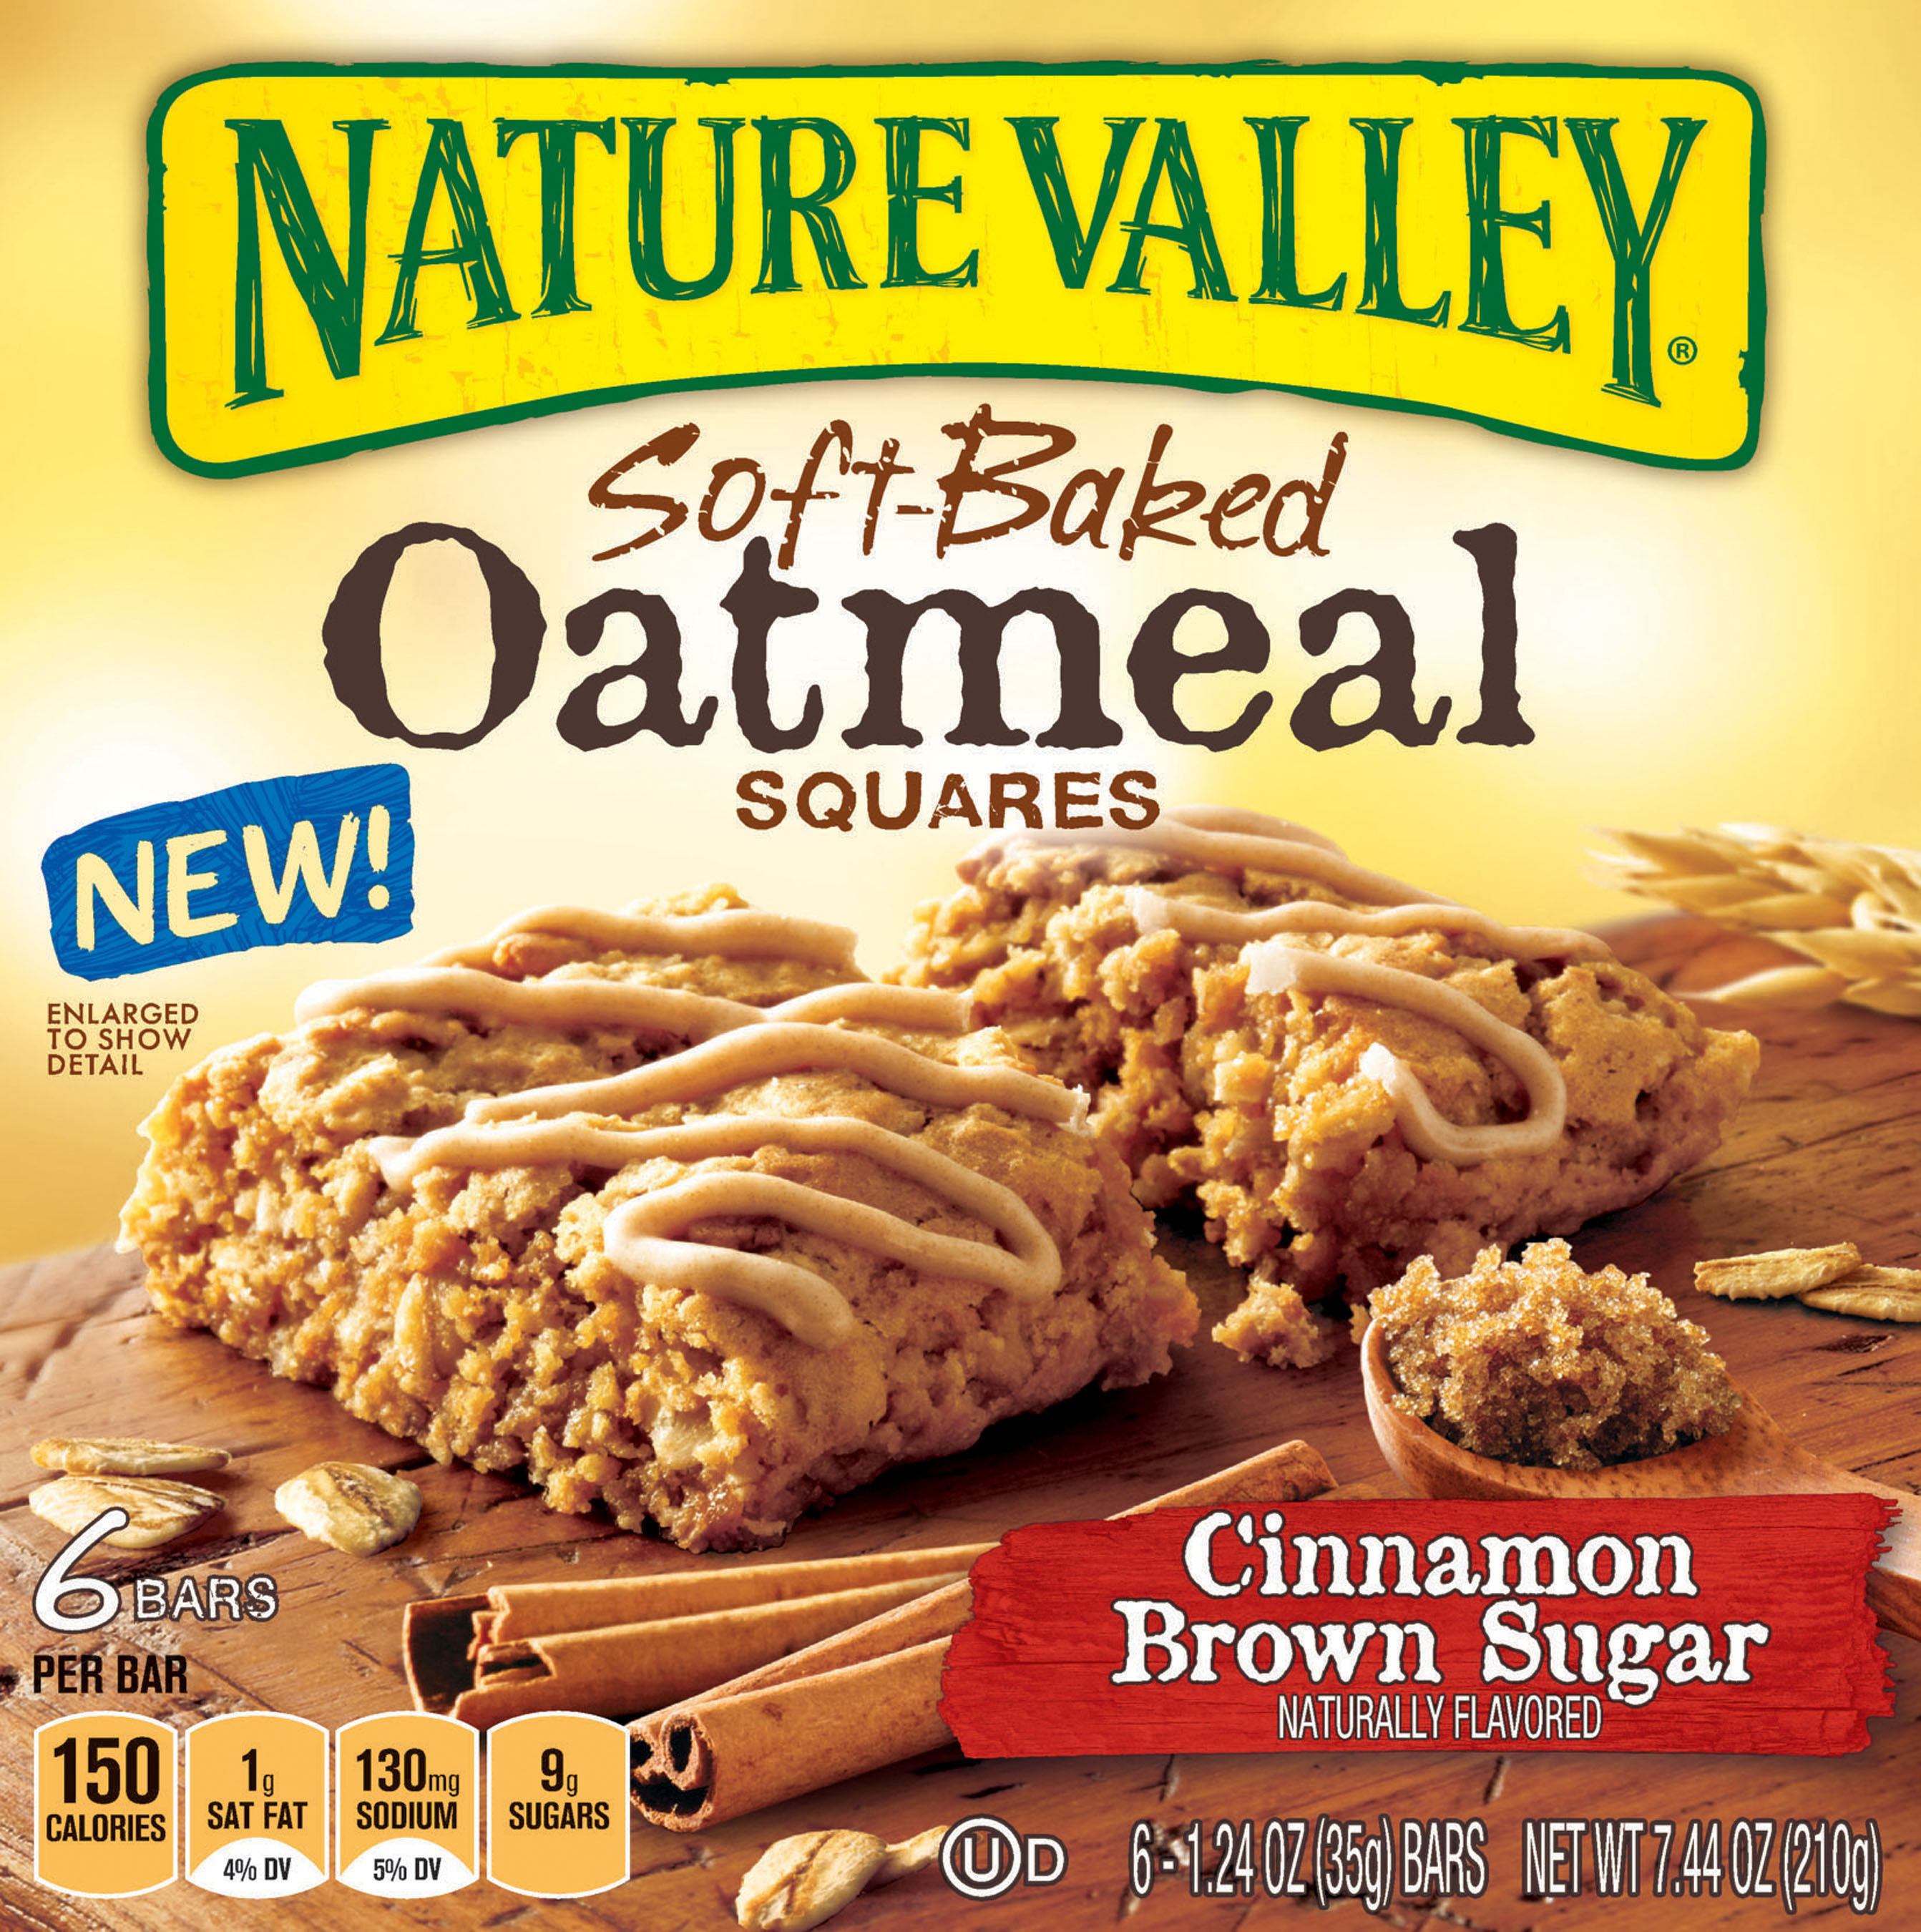 Are Nature Valley Products Kosher